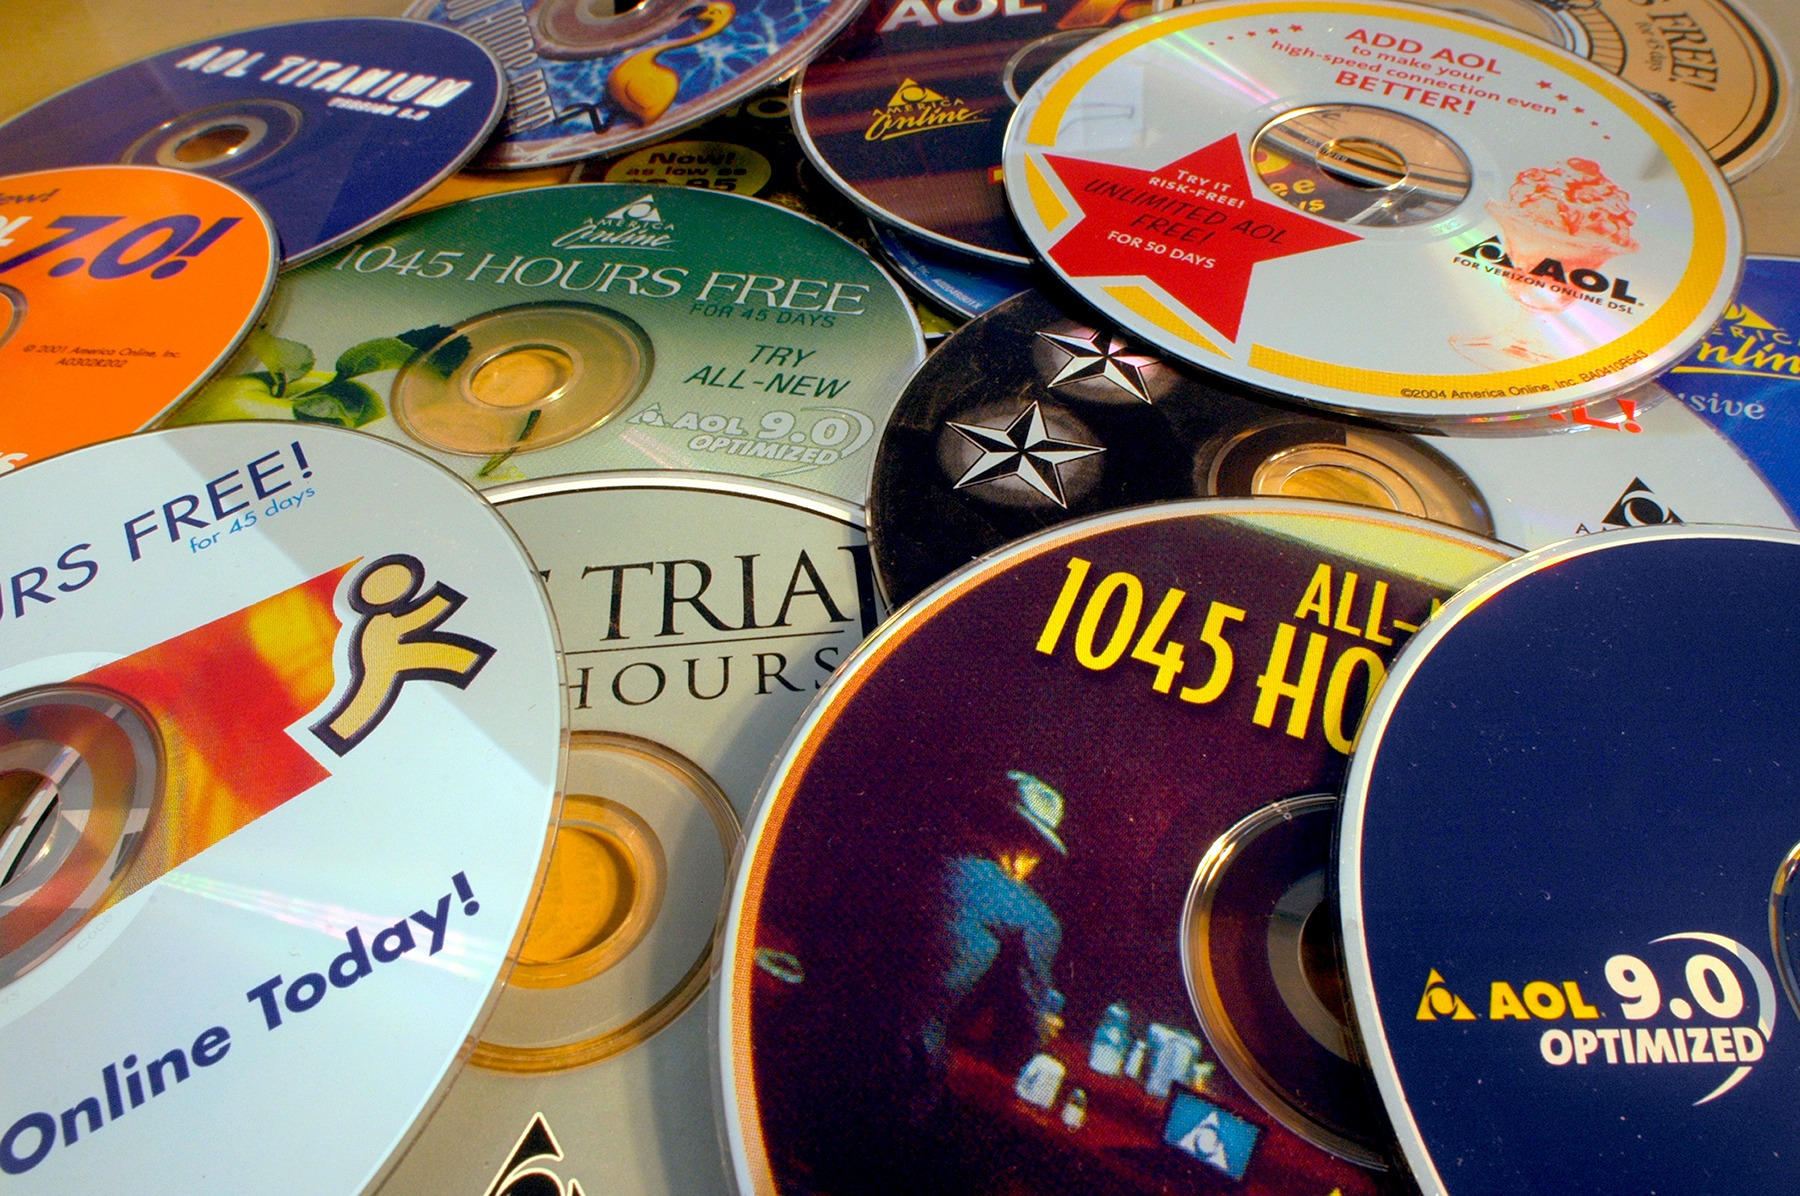 A collection of AOL cd roms